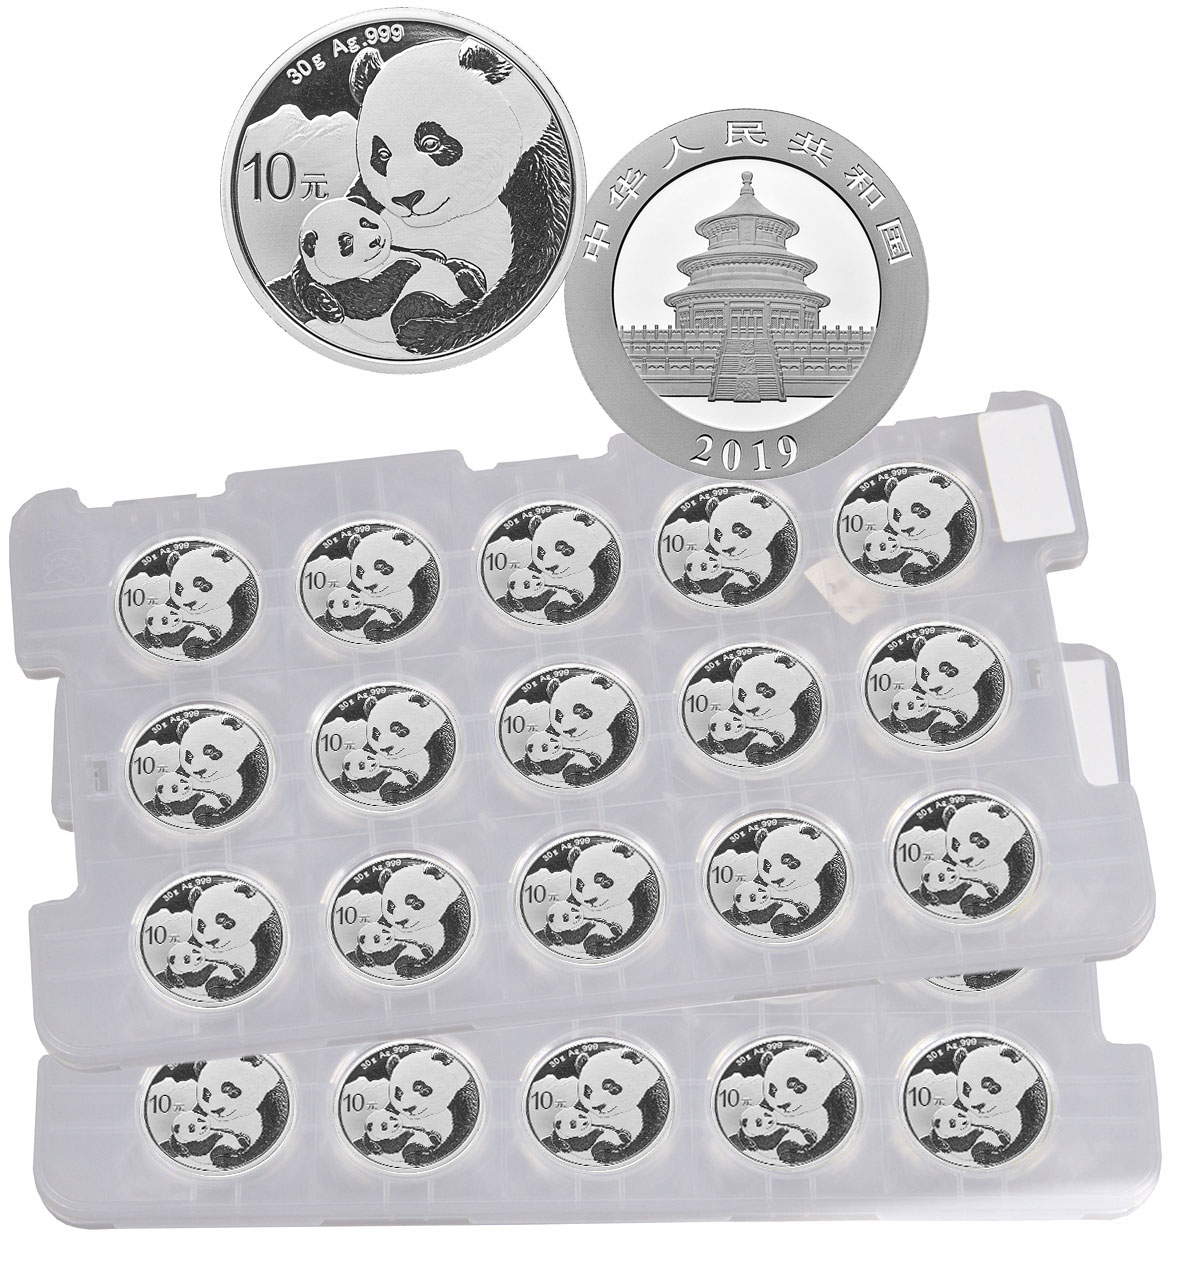 Uncut Sheet of 15 - 2019 China 30 g Silver Panda ¥10 Coins GEM BU